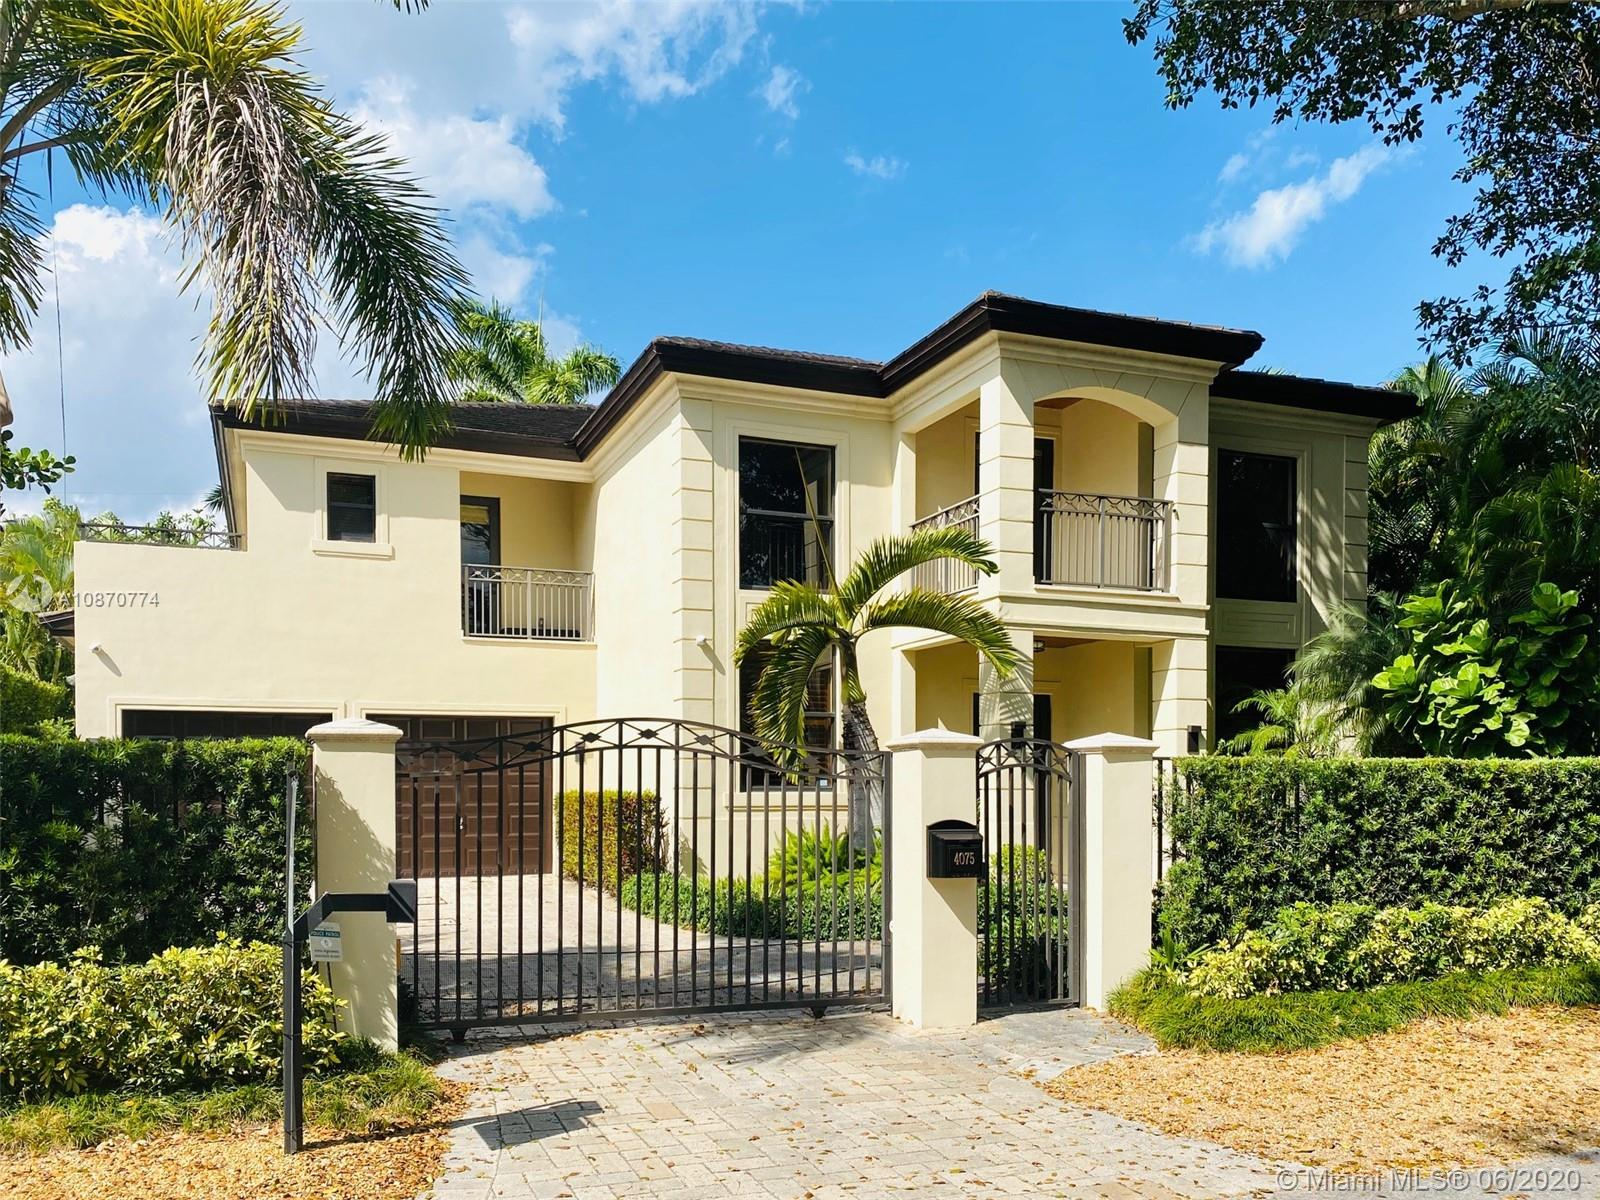 4075  Bonita Ave  For Sale A10870774, FL